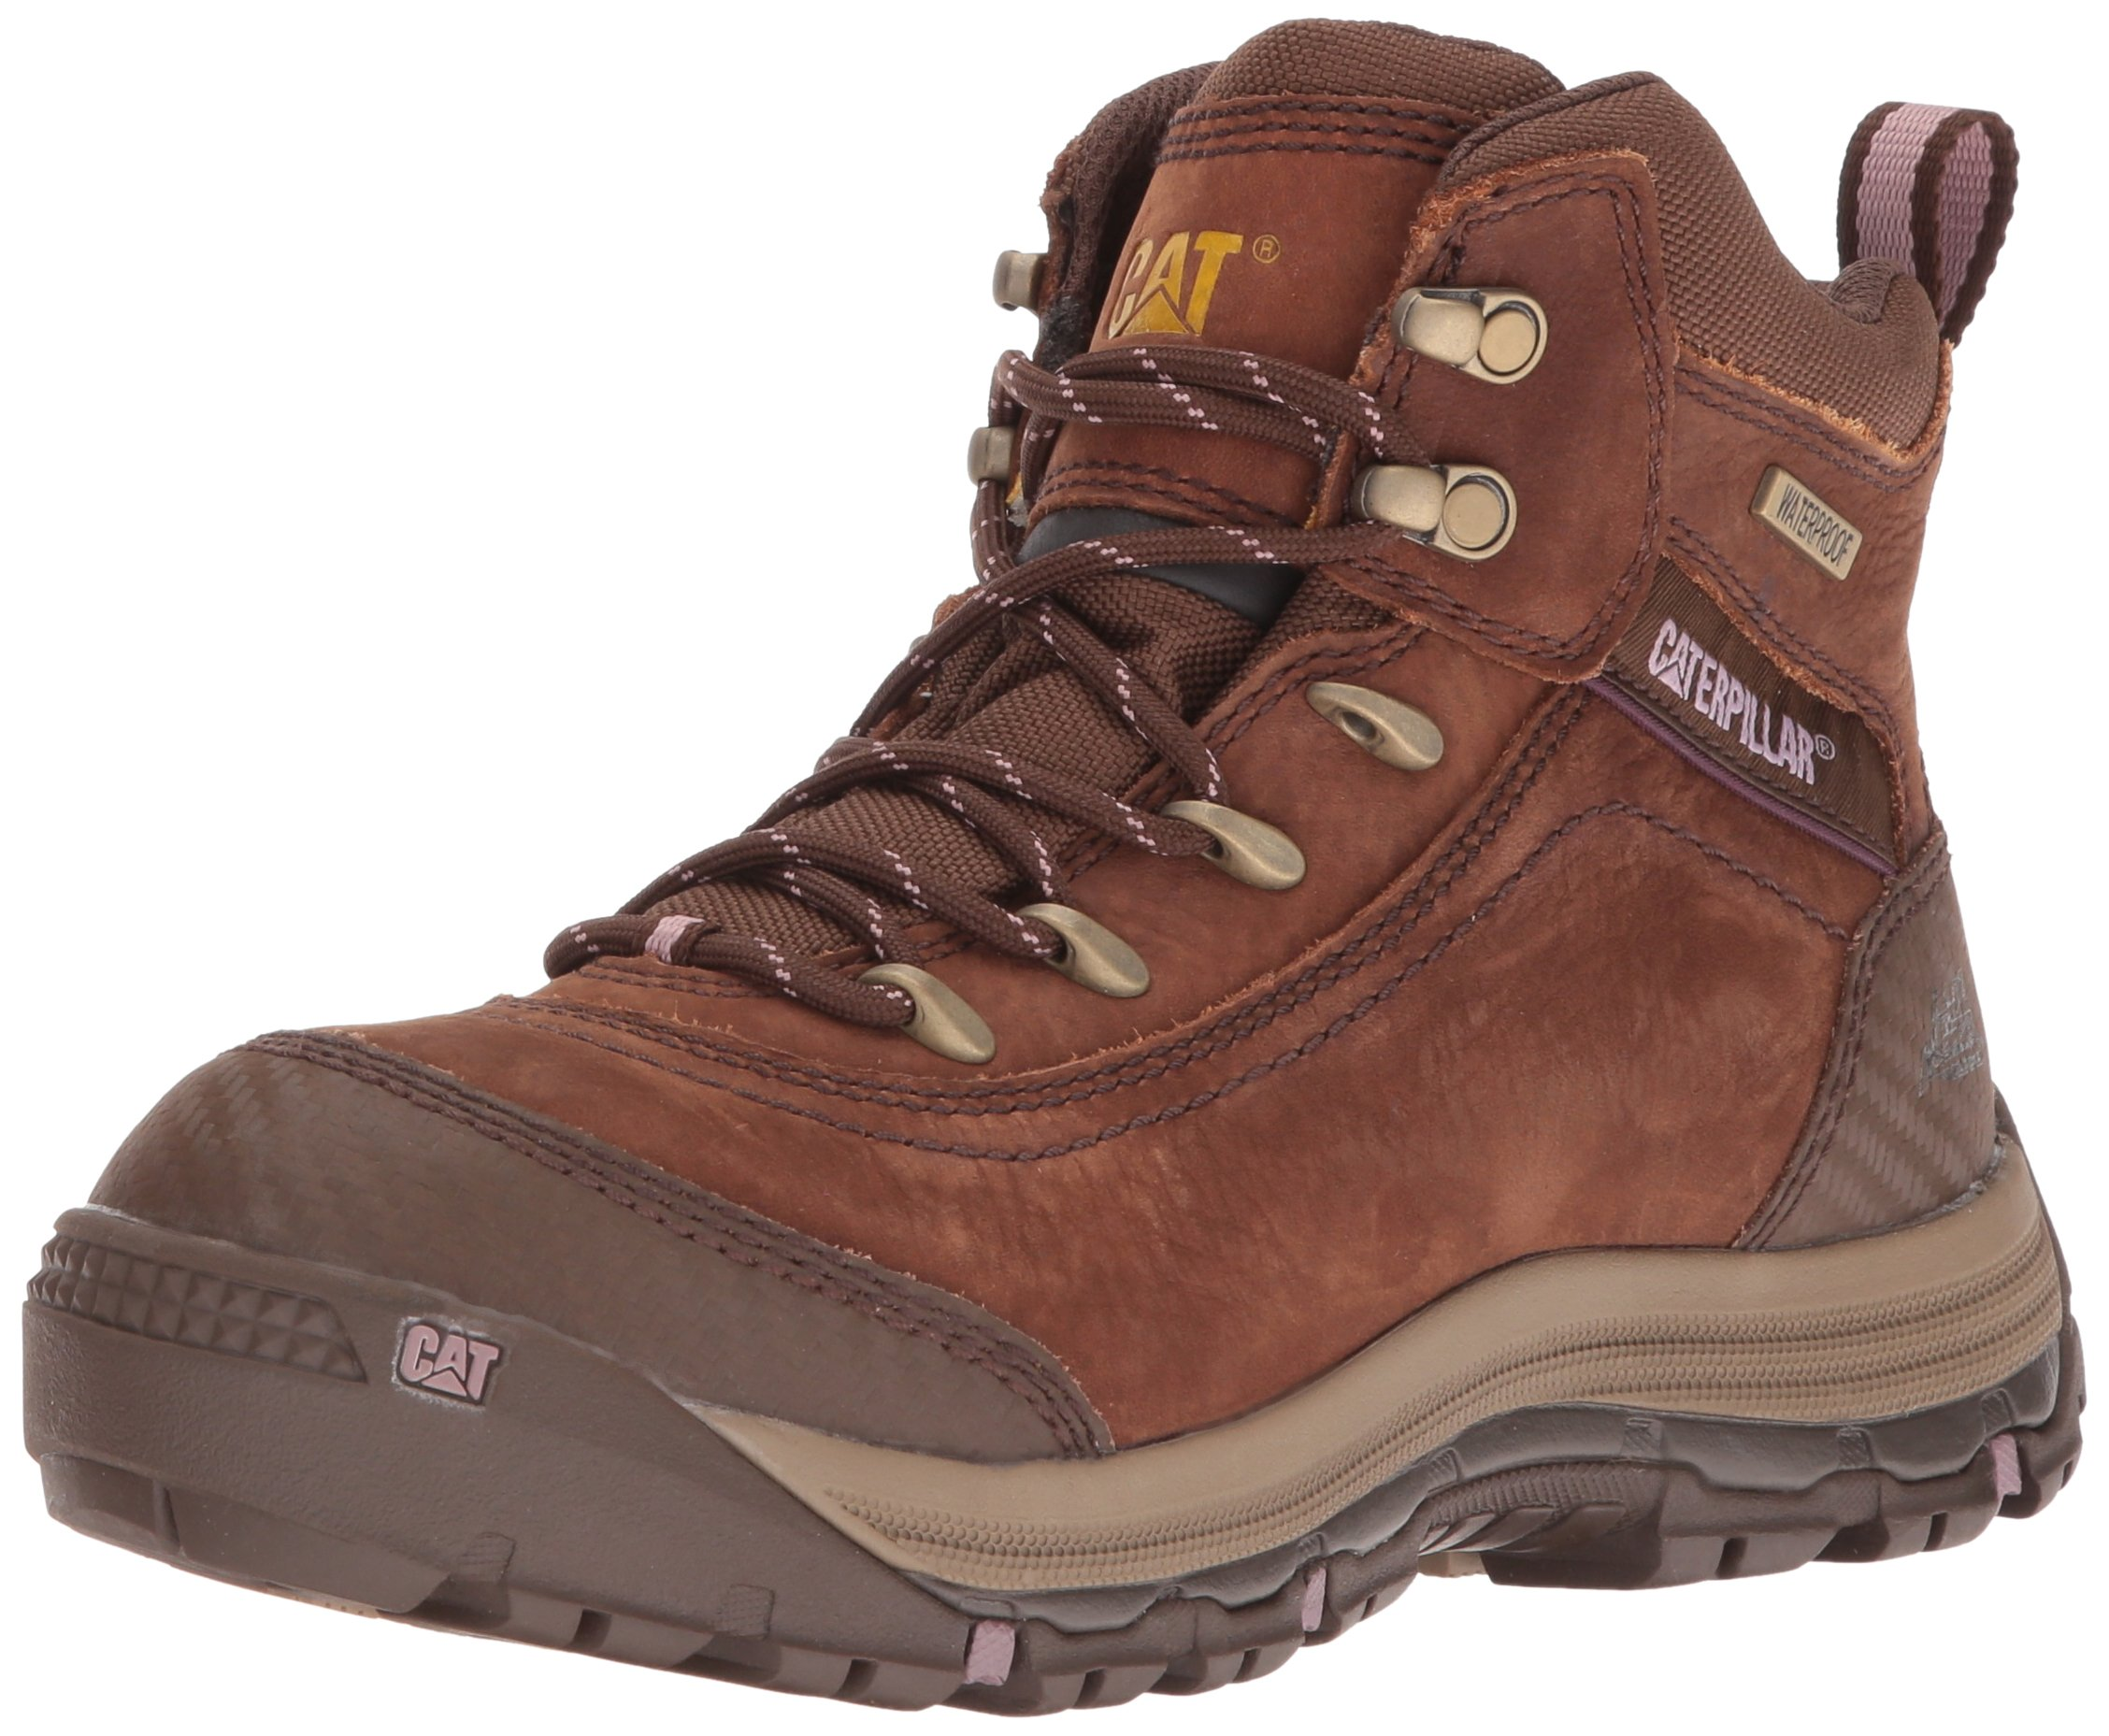 Caterpillar Women's Ally 6'' Waterproof Industrial and Construction Shoe, Brown, 10 M US